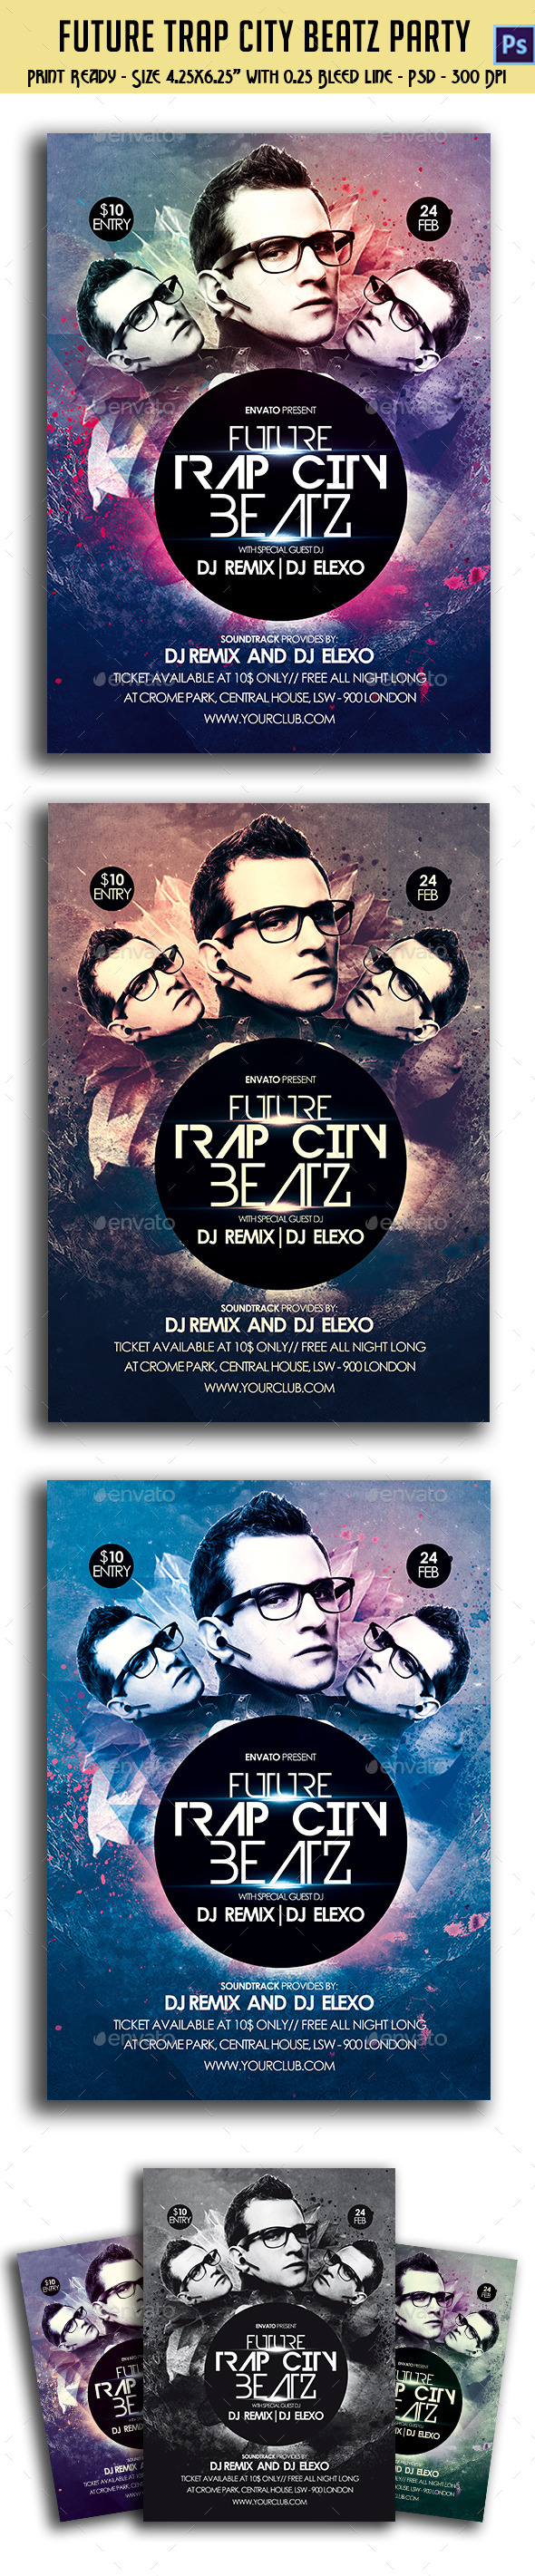 Future Trap City Beatz Party Flyer - Clubs & Parties Events